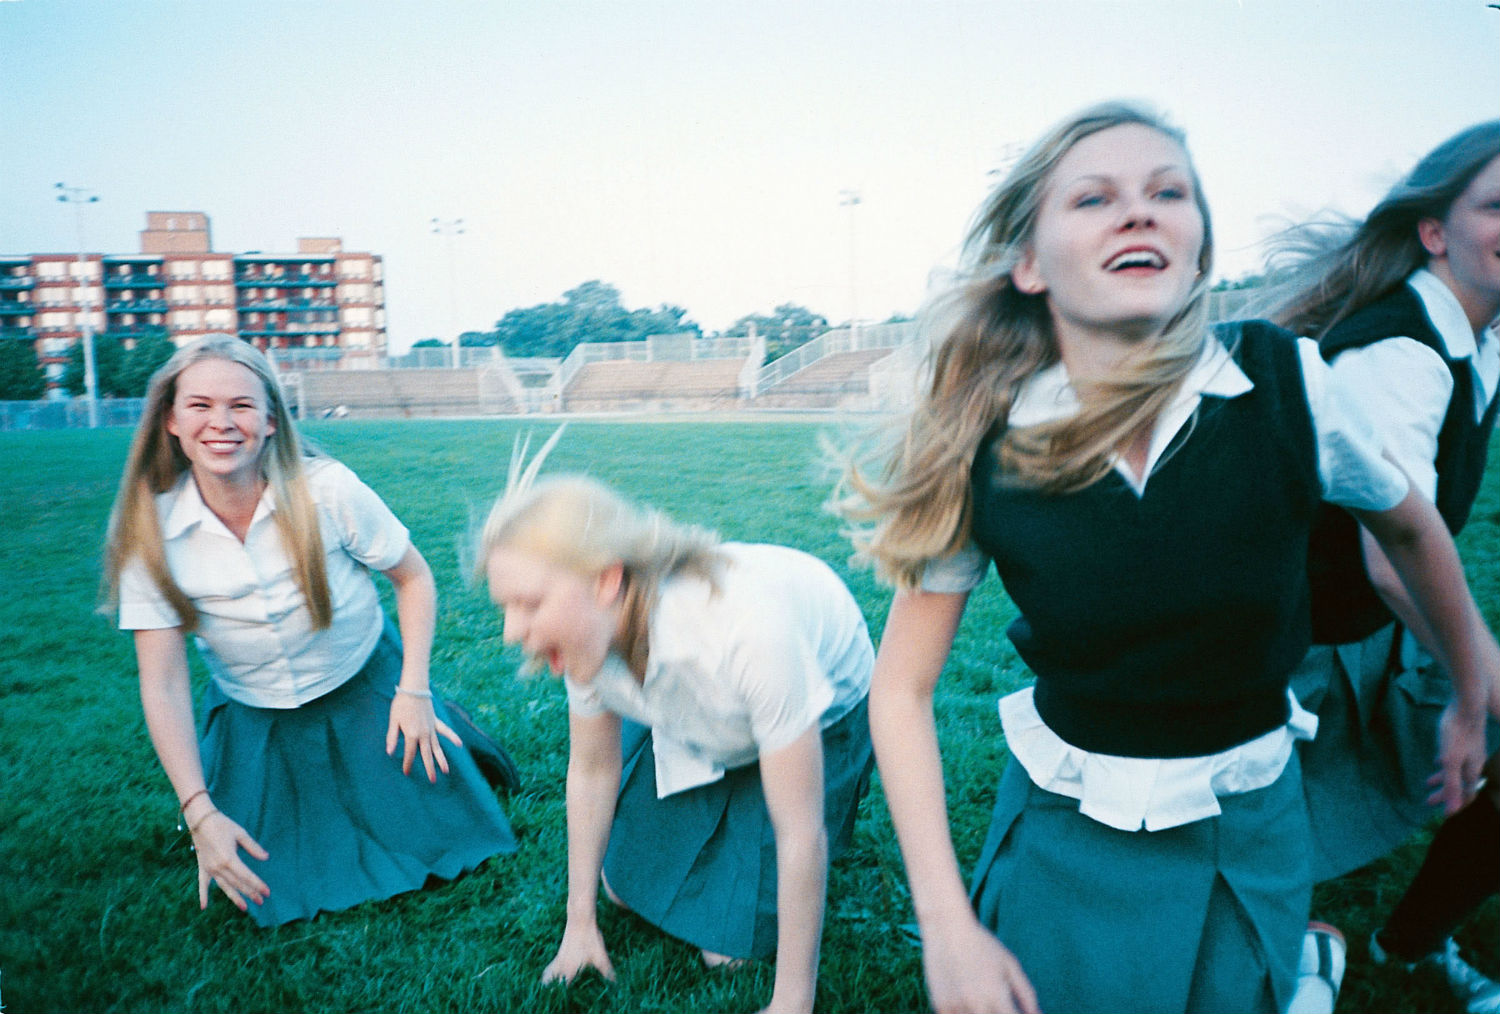 Still image from The Virgin Suicides